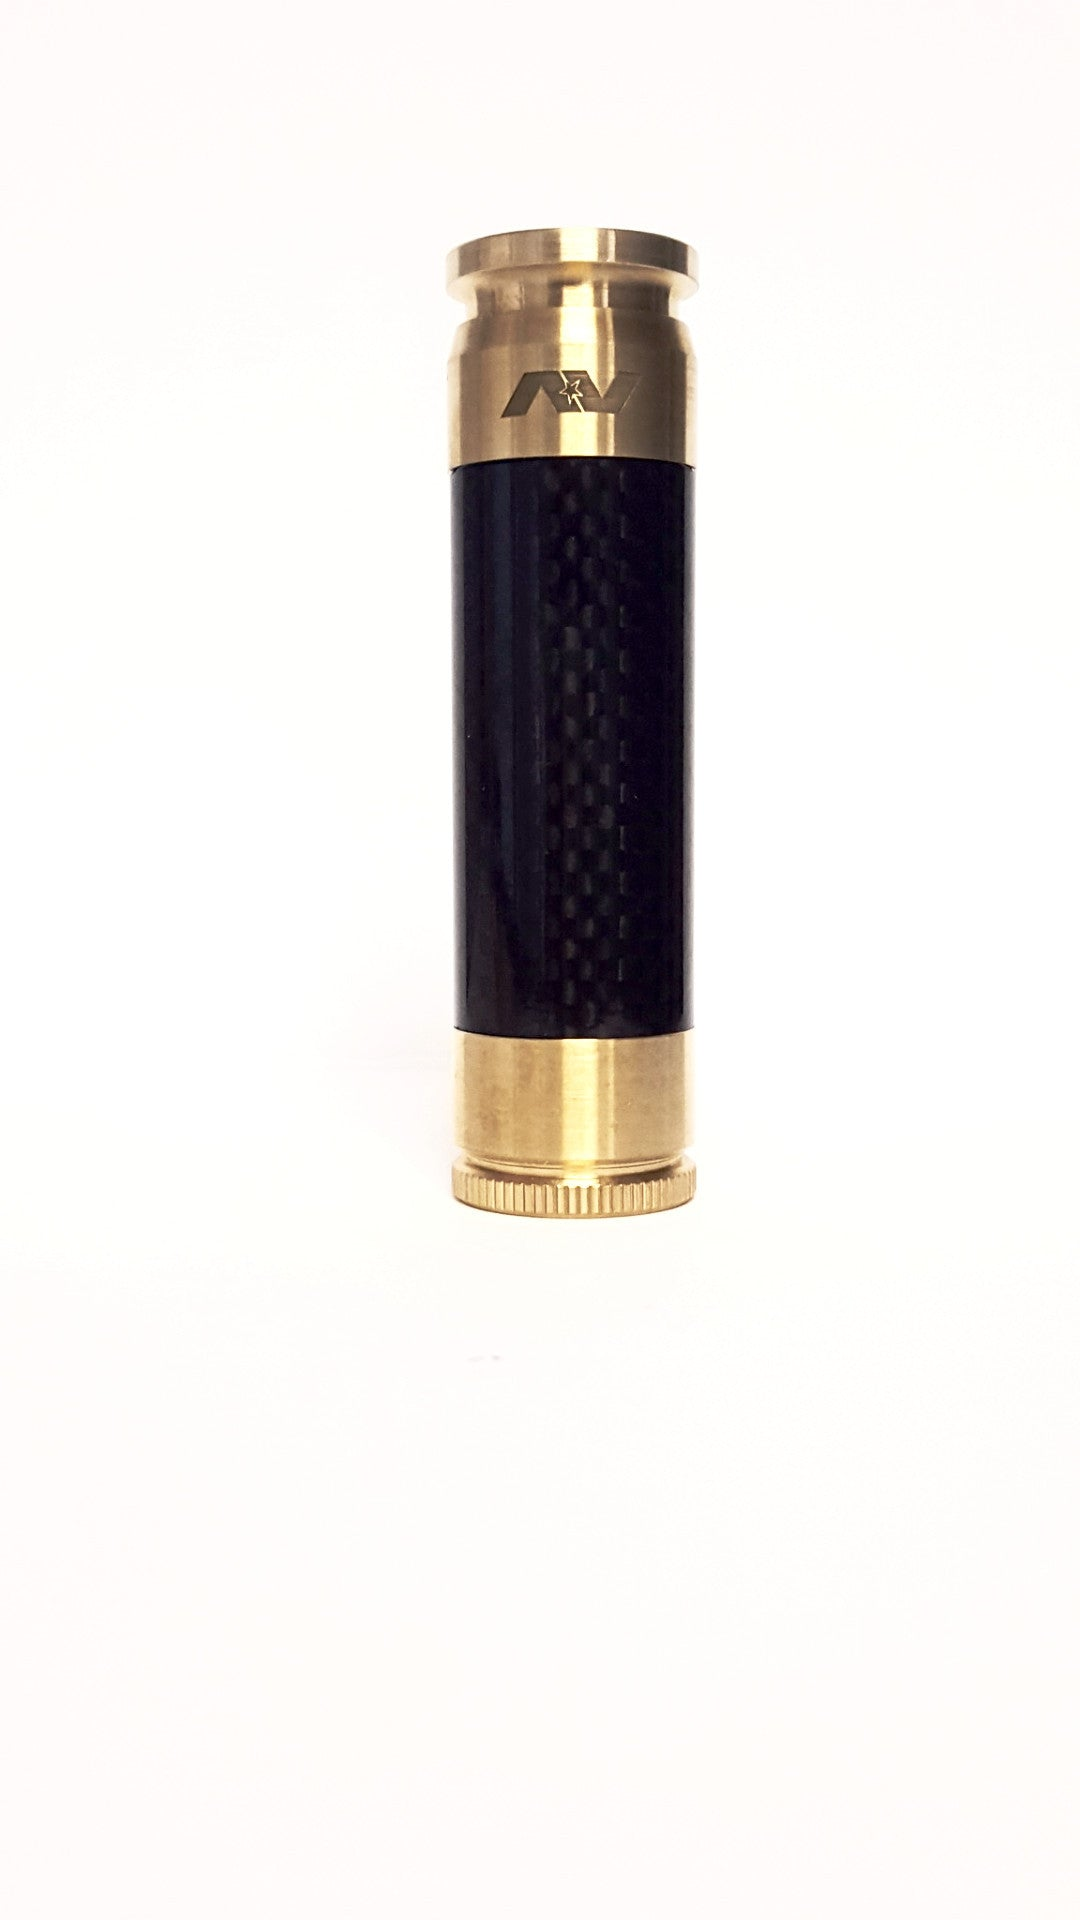 Avid Lyfe (AV) Able Mod (Brass) - IN2VAPES